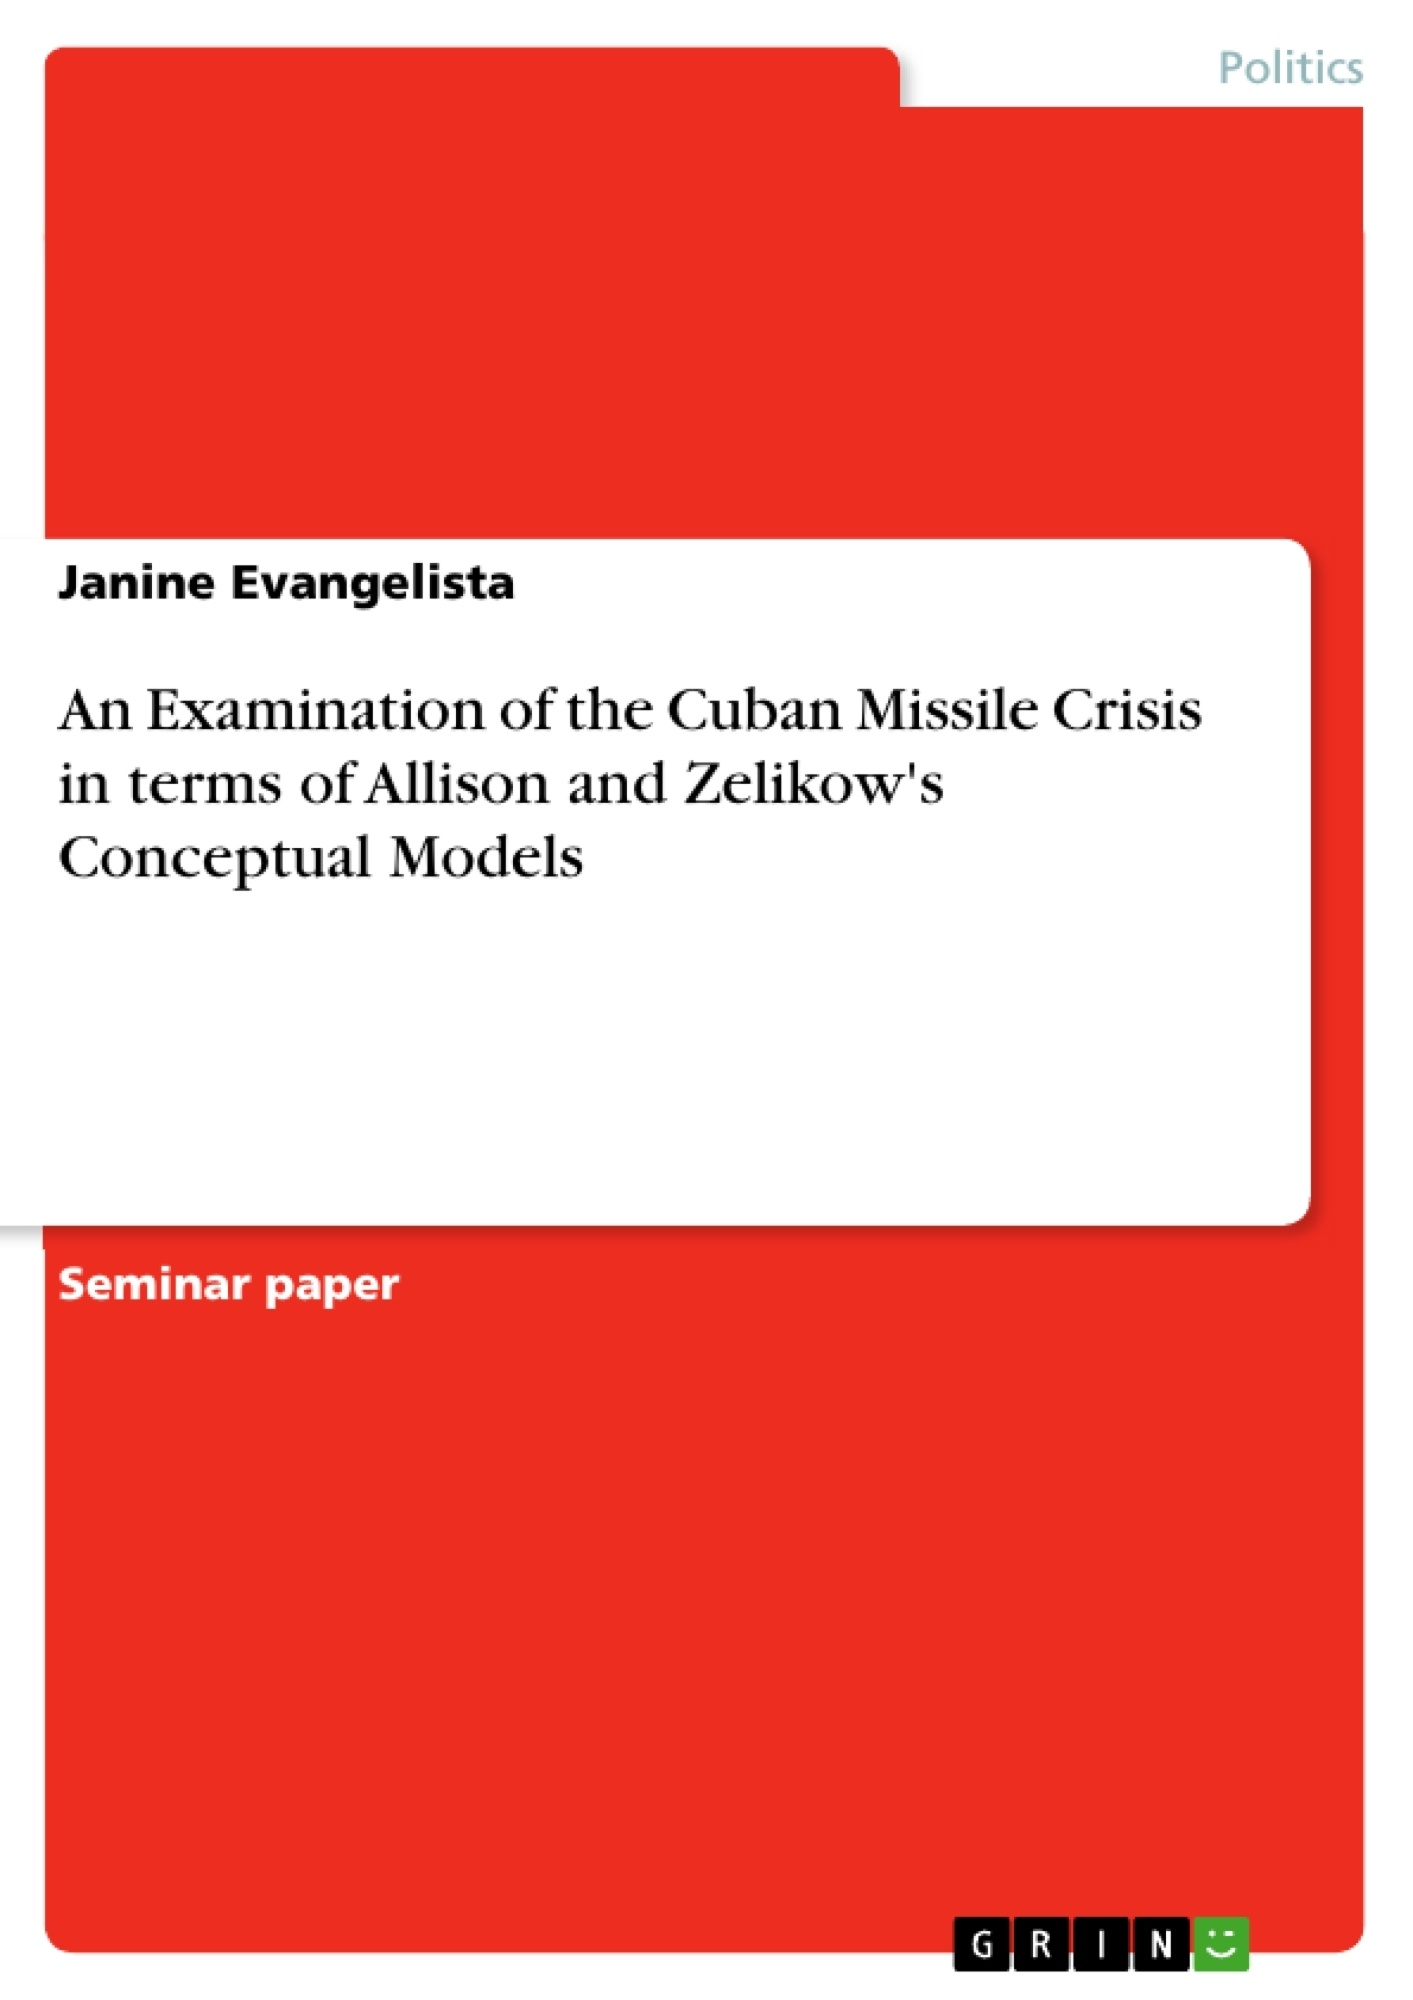 Title: An Examination of the Cuban Missile Crisis in terms of Allison and Zelikow's Conceptual Models